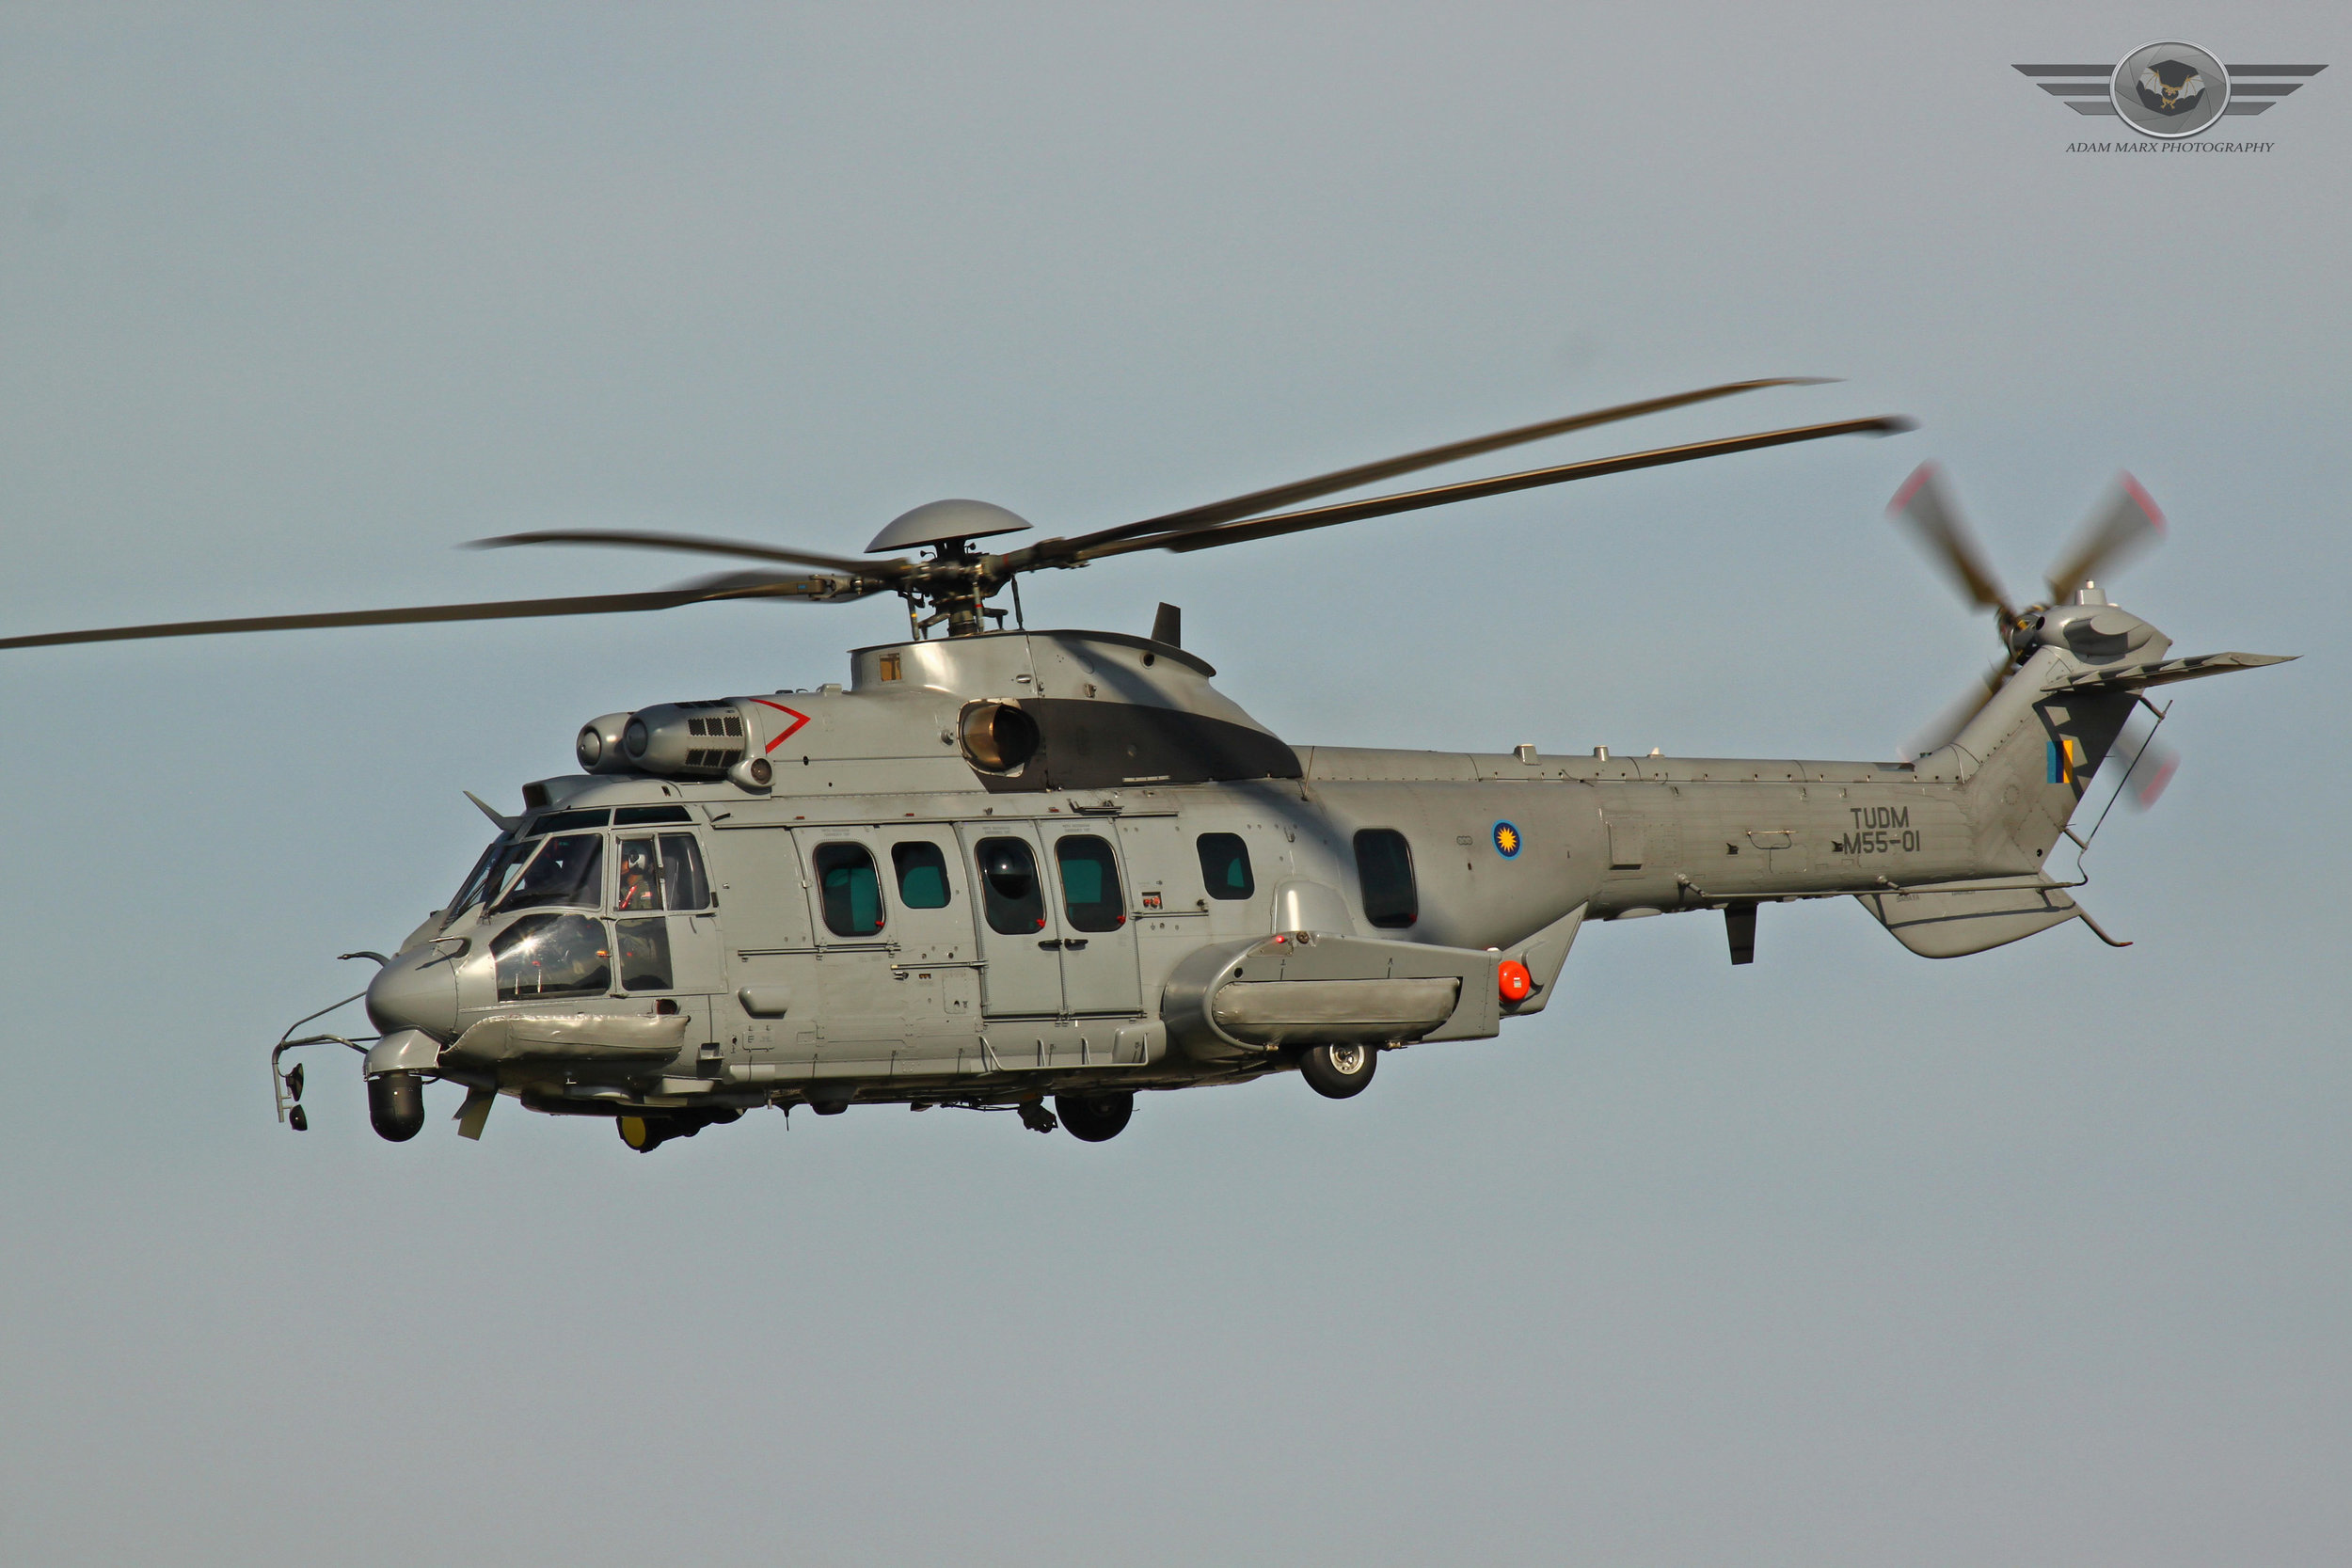 Newest helicopter in the Malaysian inventory, the EC725 will replace the S-61.